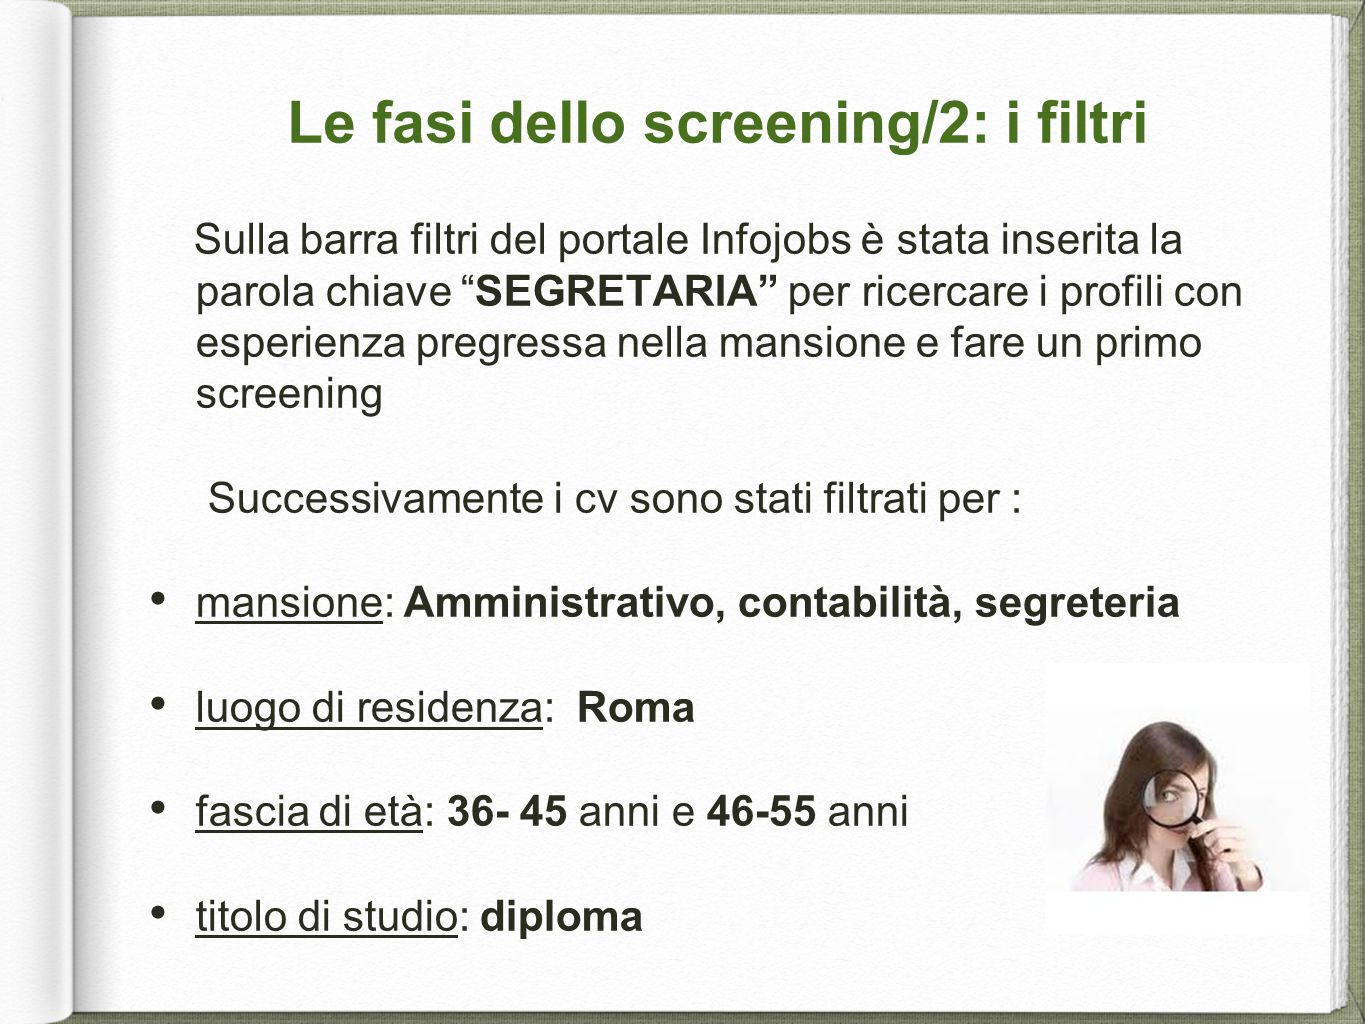 Le fasi dello screening/2: i filtri